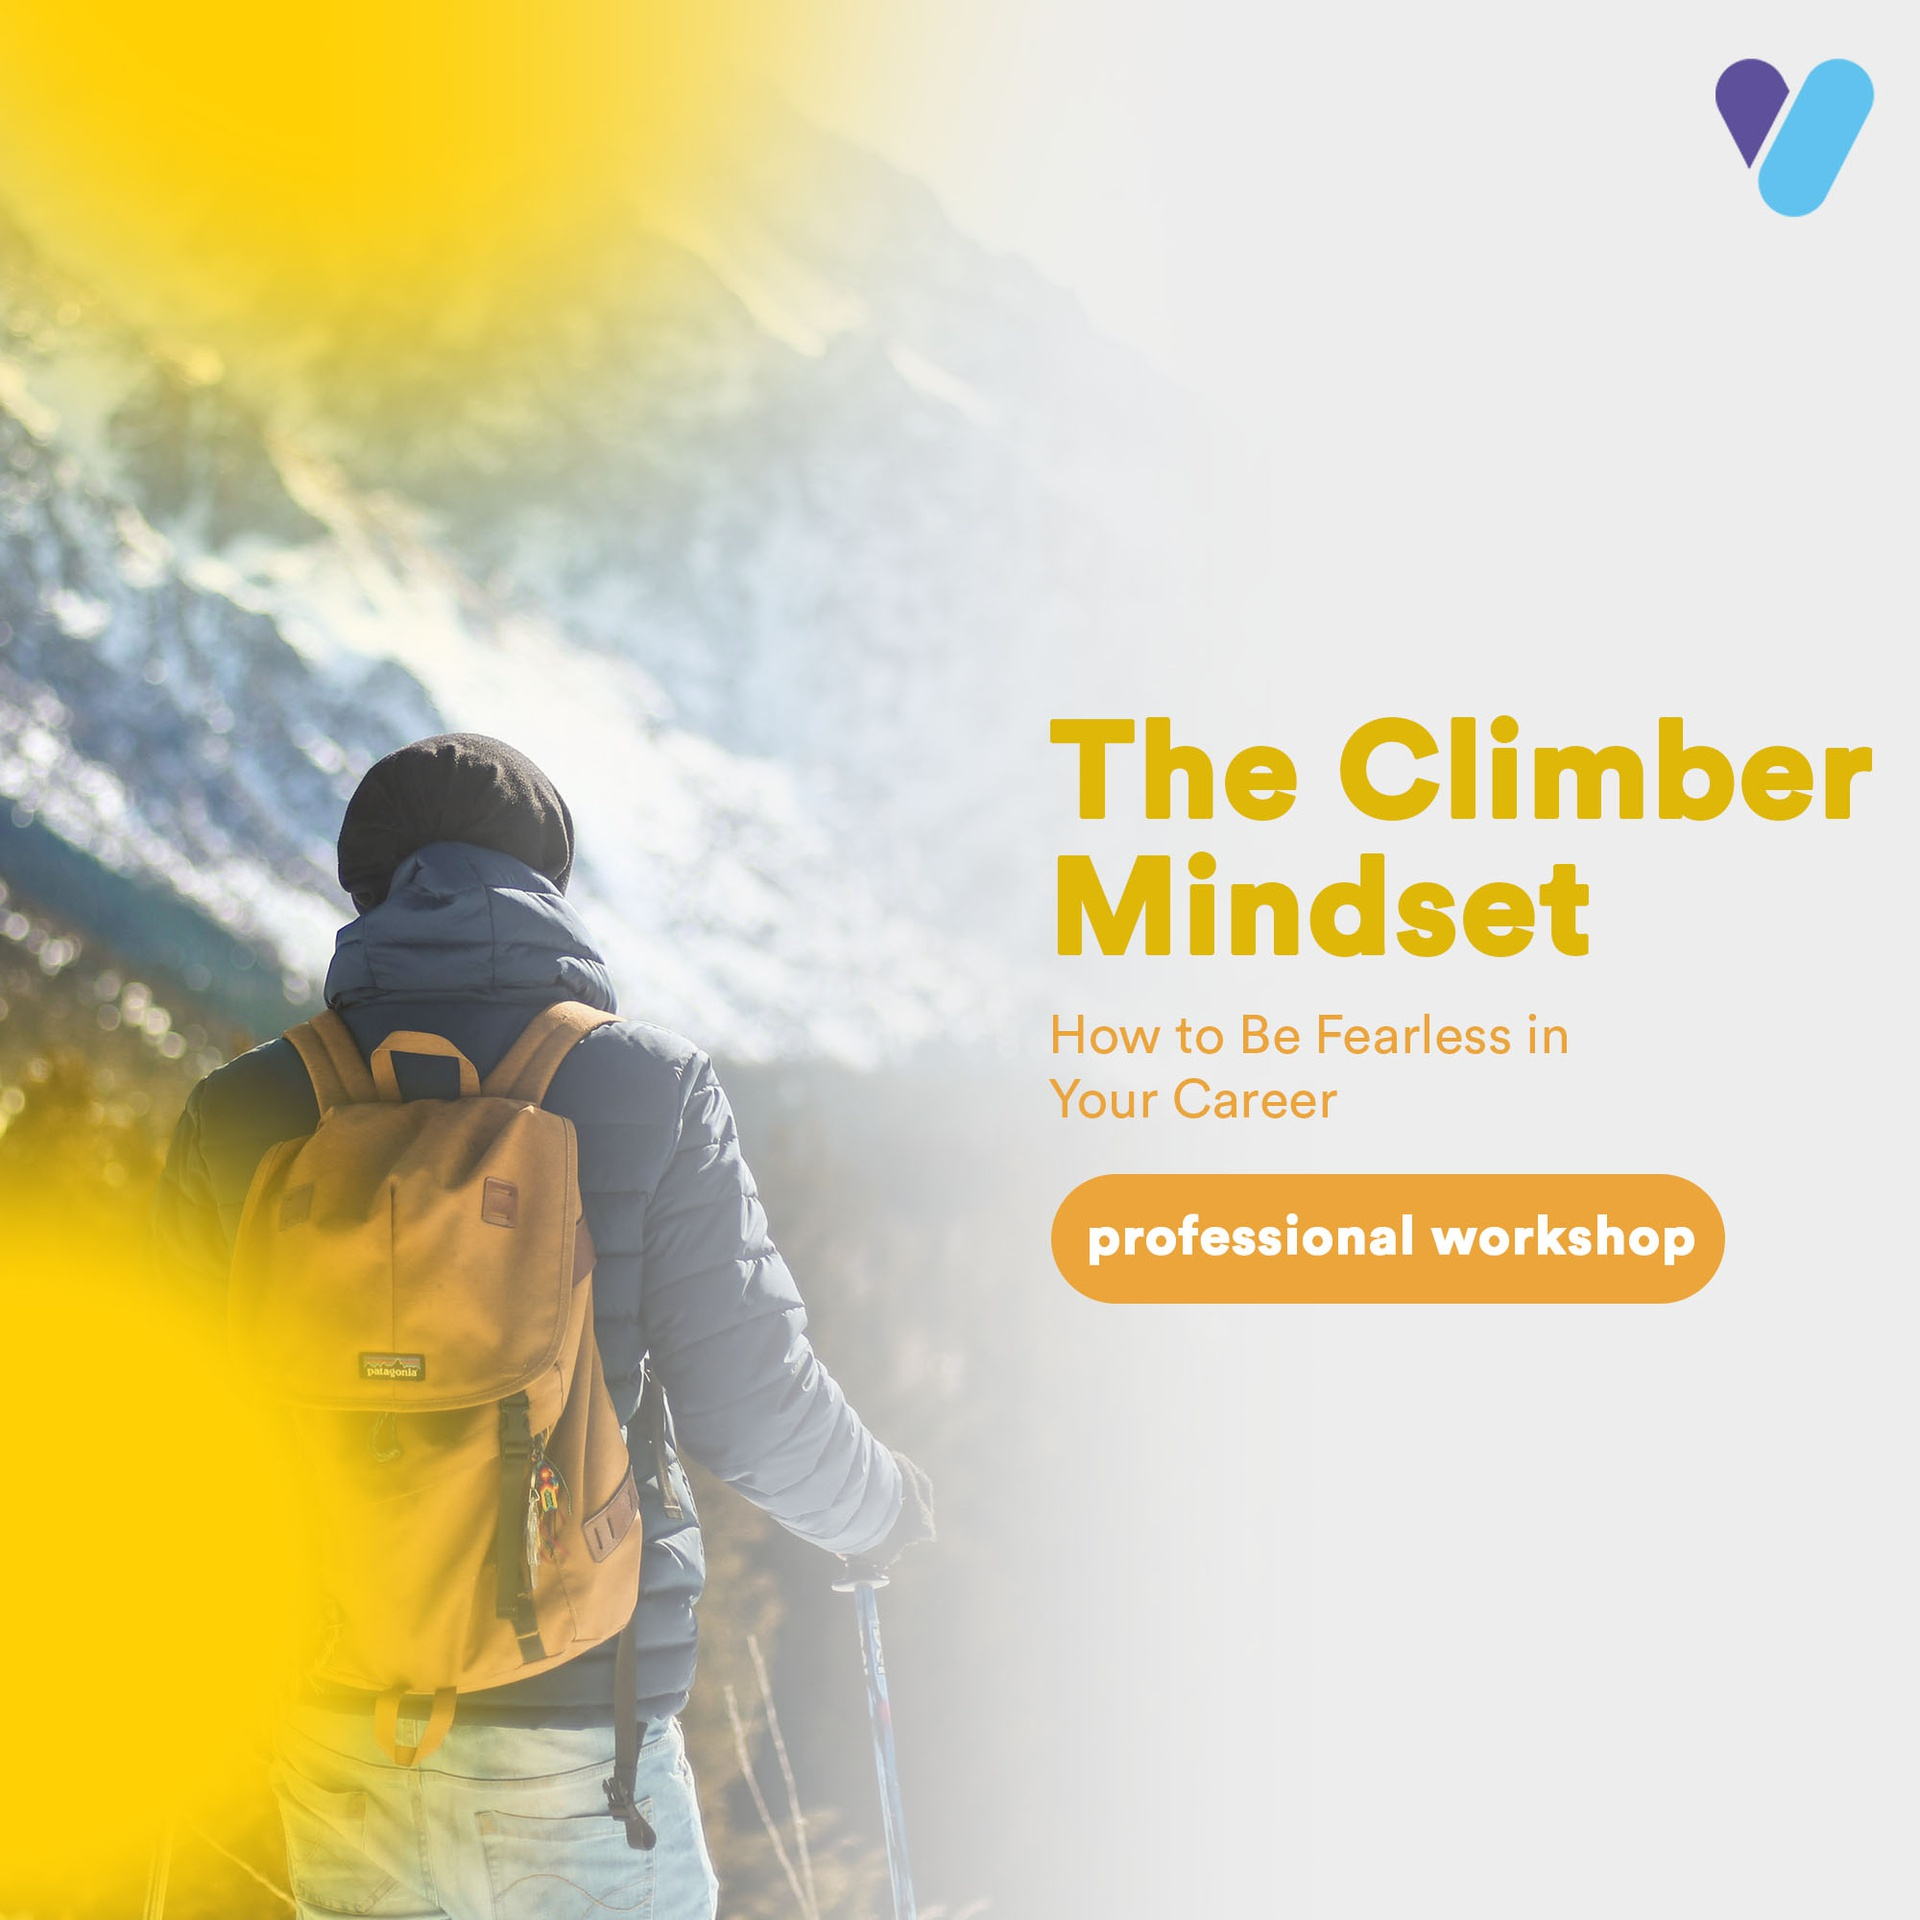 The Climber Mindset: How to be Fearless in Your Career